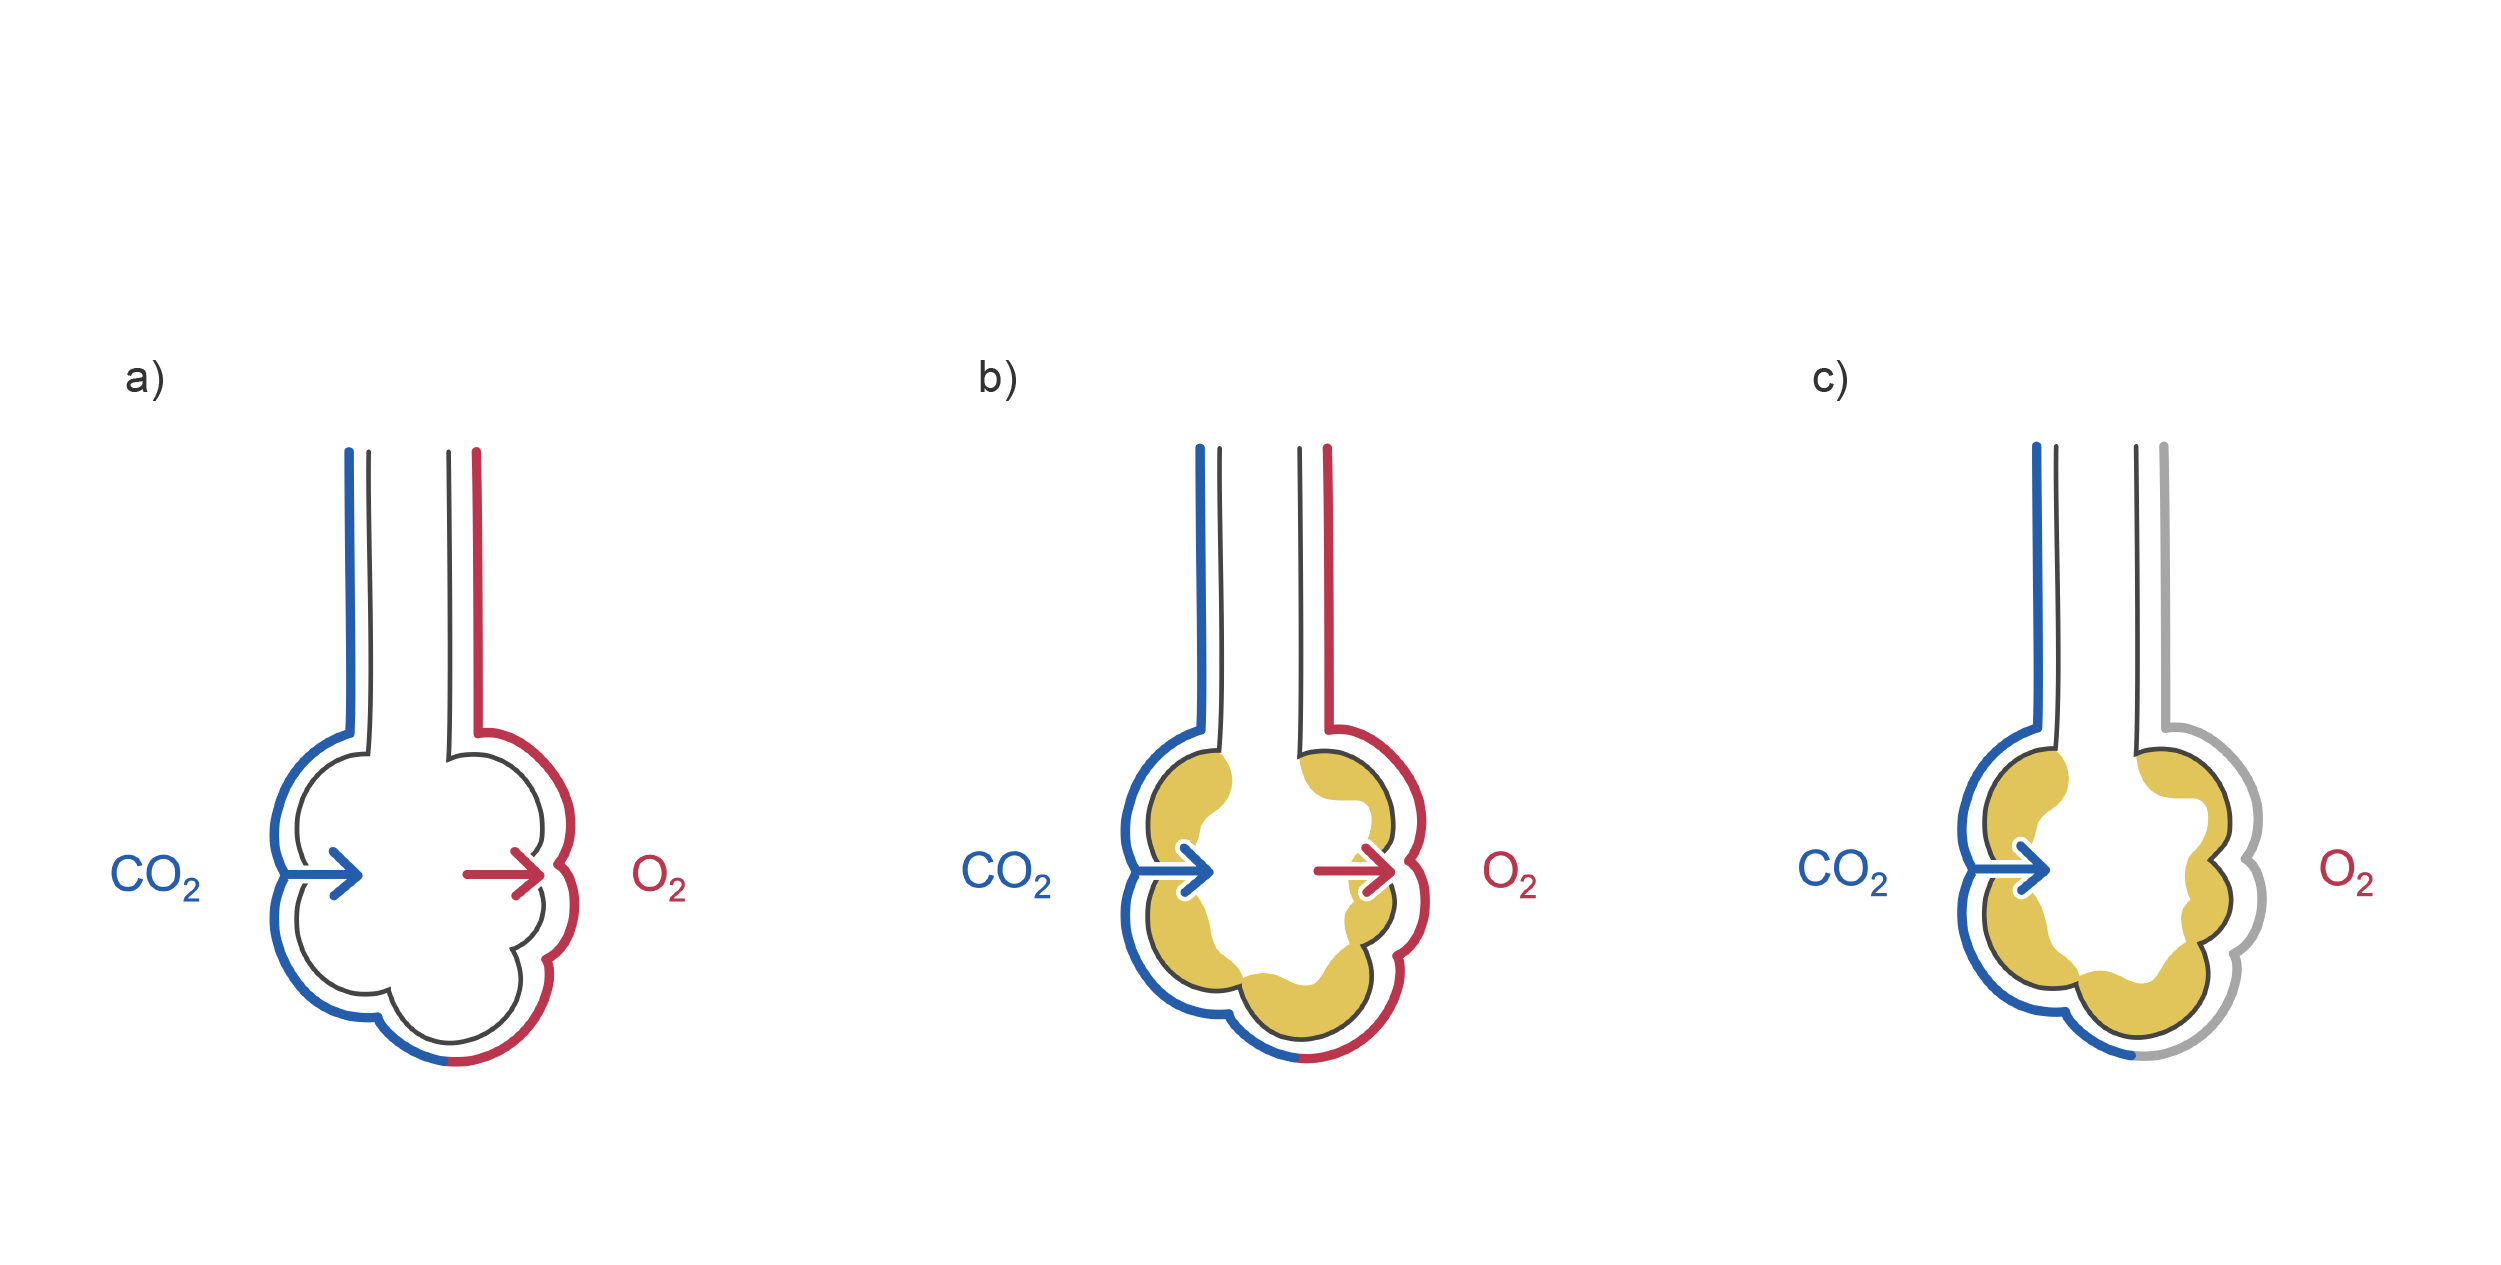 Alveoli with pus accumulation and reduced oxygen in COVID-19. Illustration.